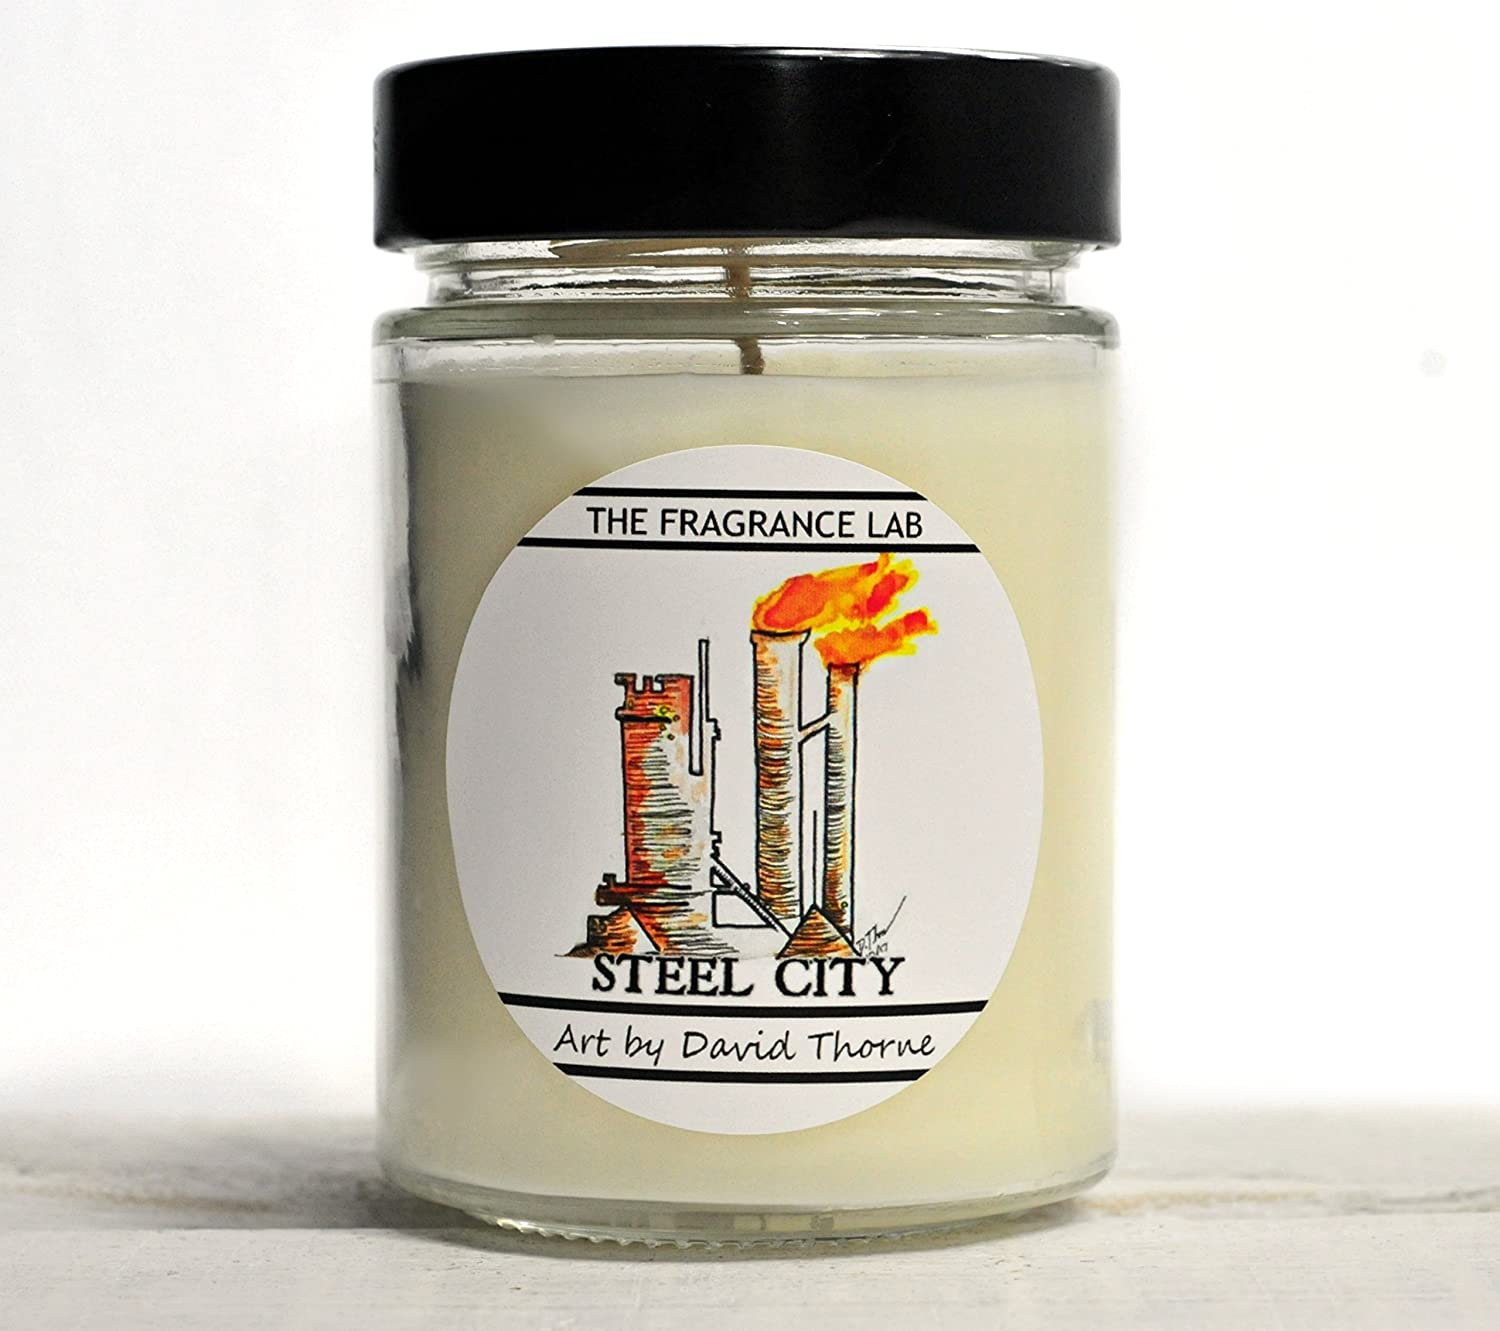 Hamilton Soy Candles -Steel City Smoke Scented   Art by David Thorne   The Fragrance Lab